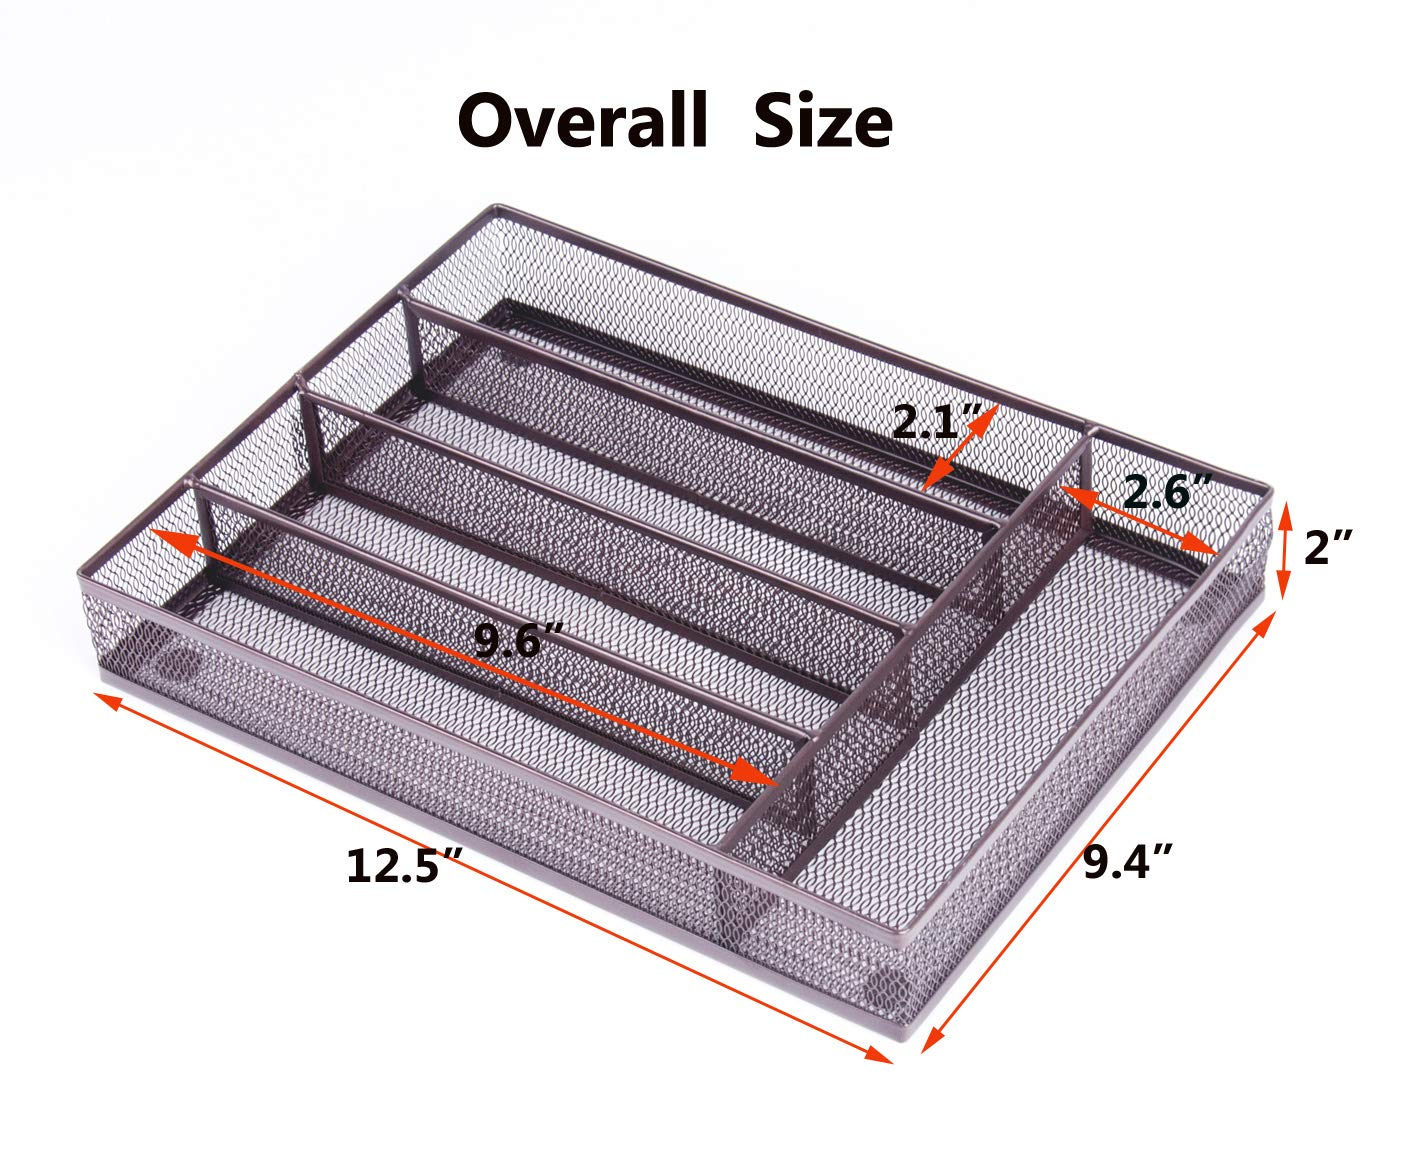 QZDJG Flatware Tray Utensil Drawer Organizer Kitchen Utensil Cutlery Tray Mesh Designing with Foam Feet Multi Compartments Keep Desk Drawer and Office Supplies Well Organized (Brown)